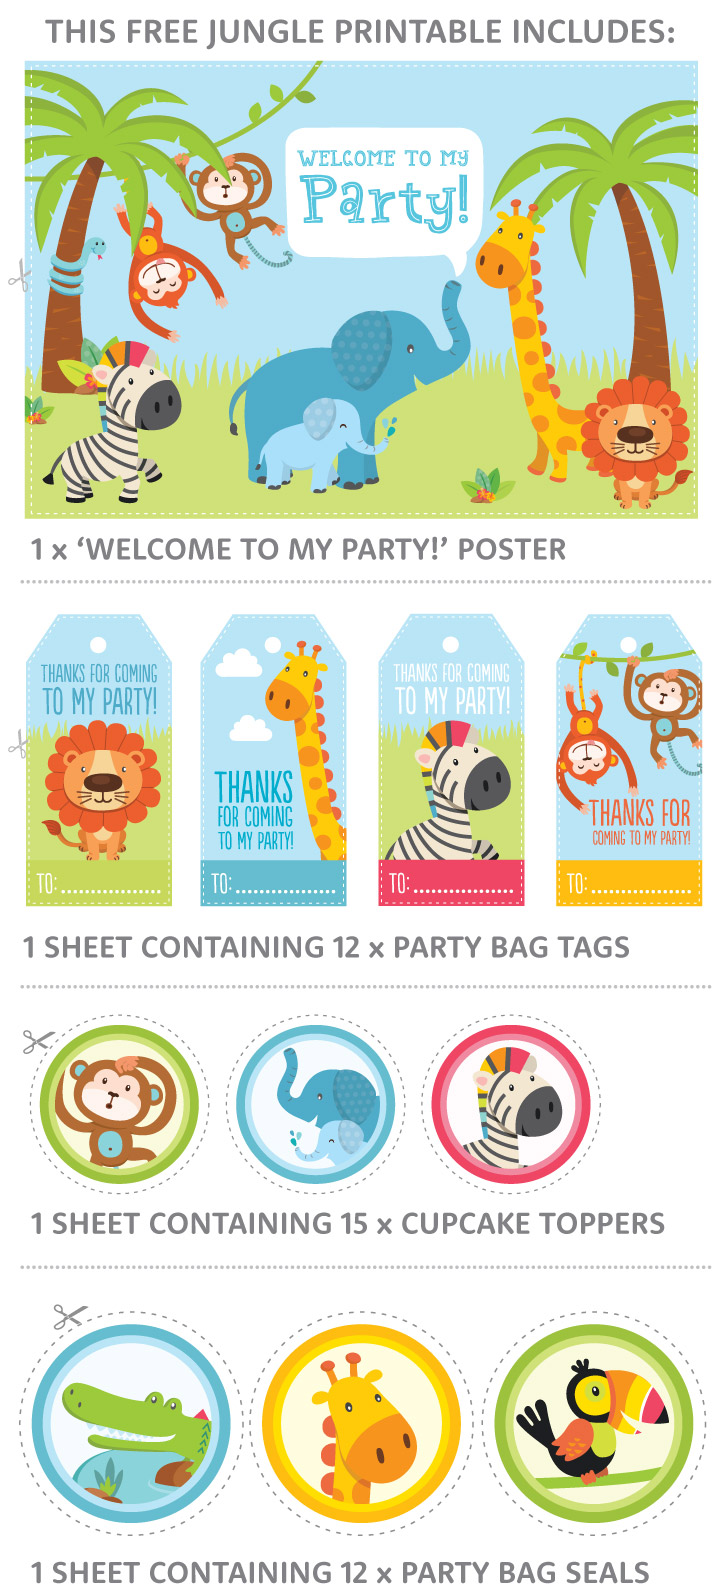 Free Jungle Party Invitation Printables